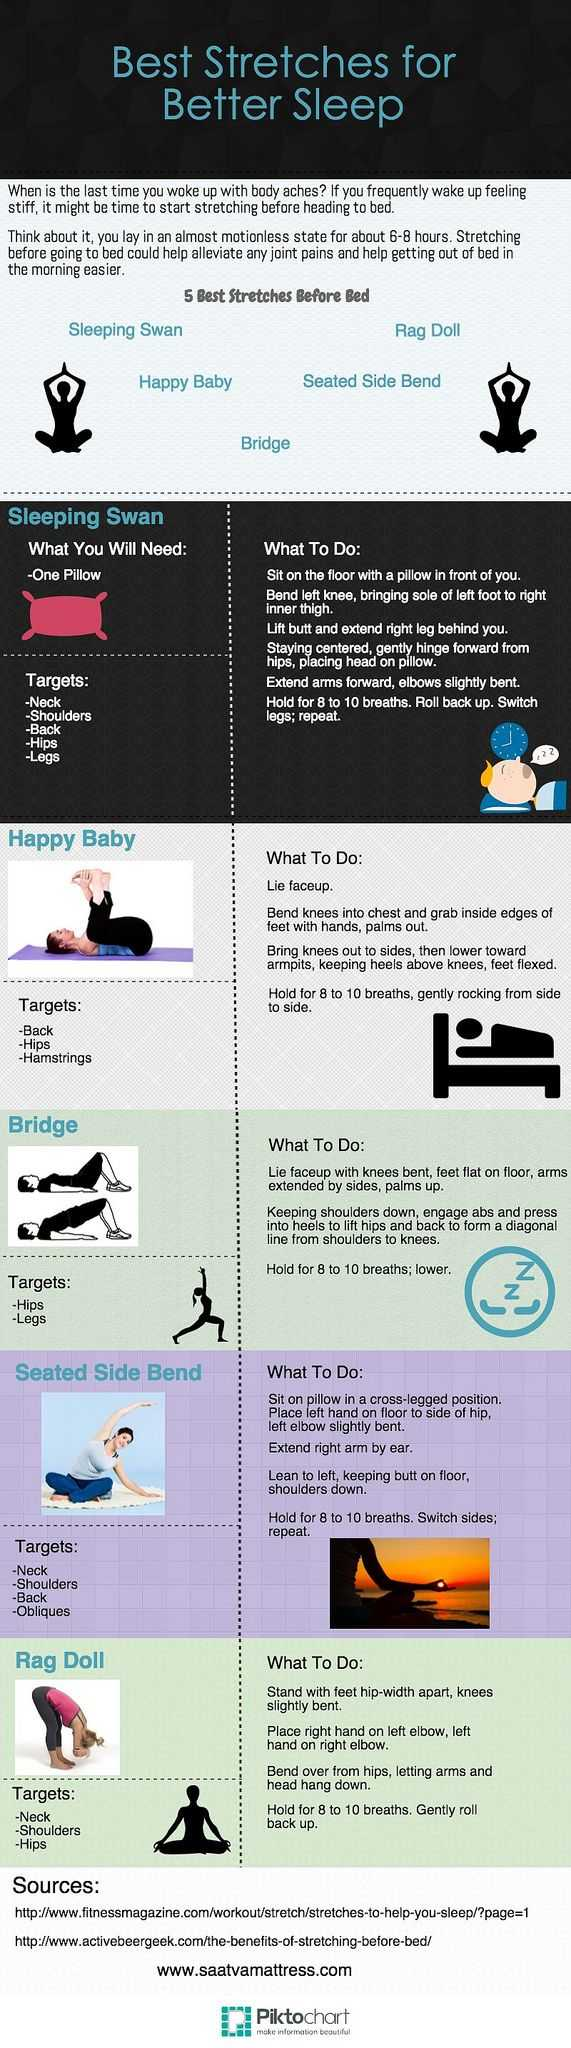 Stretches For Better Sleep